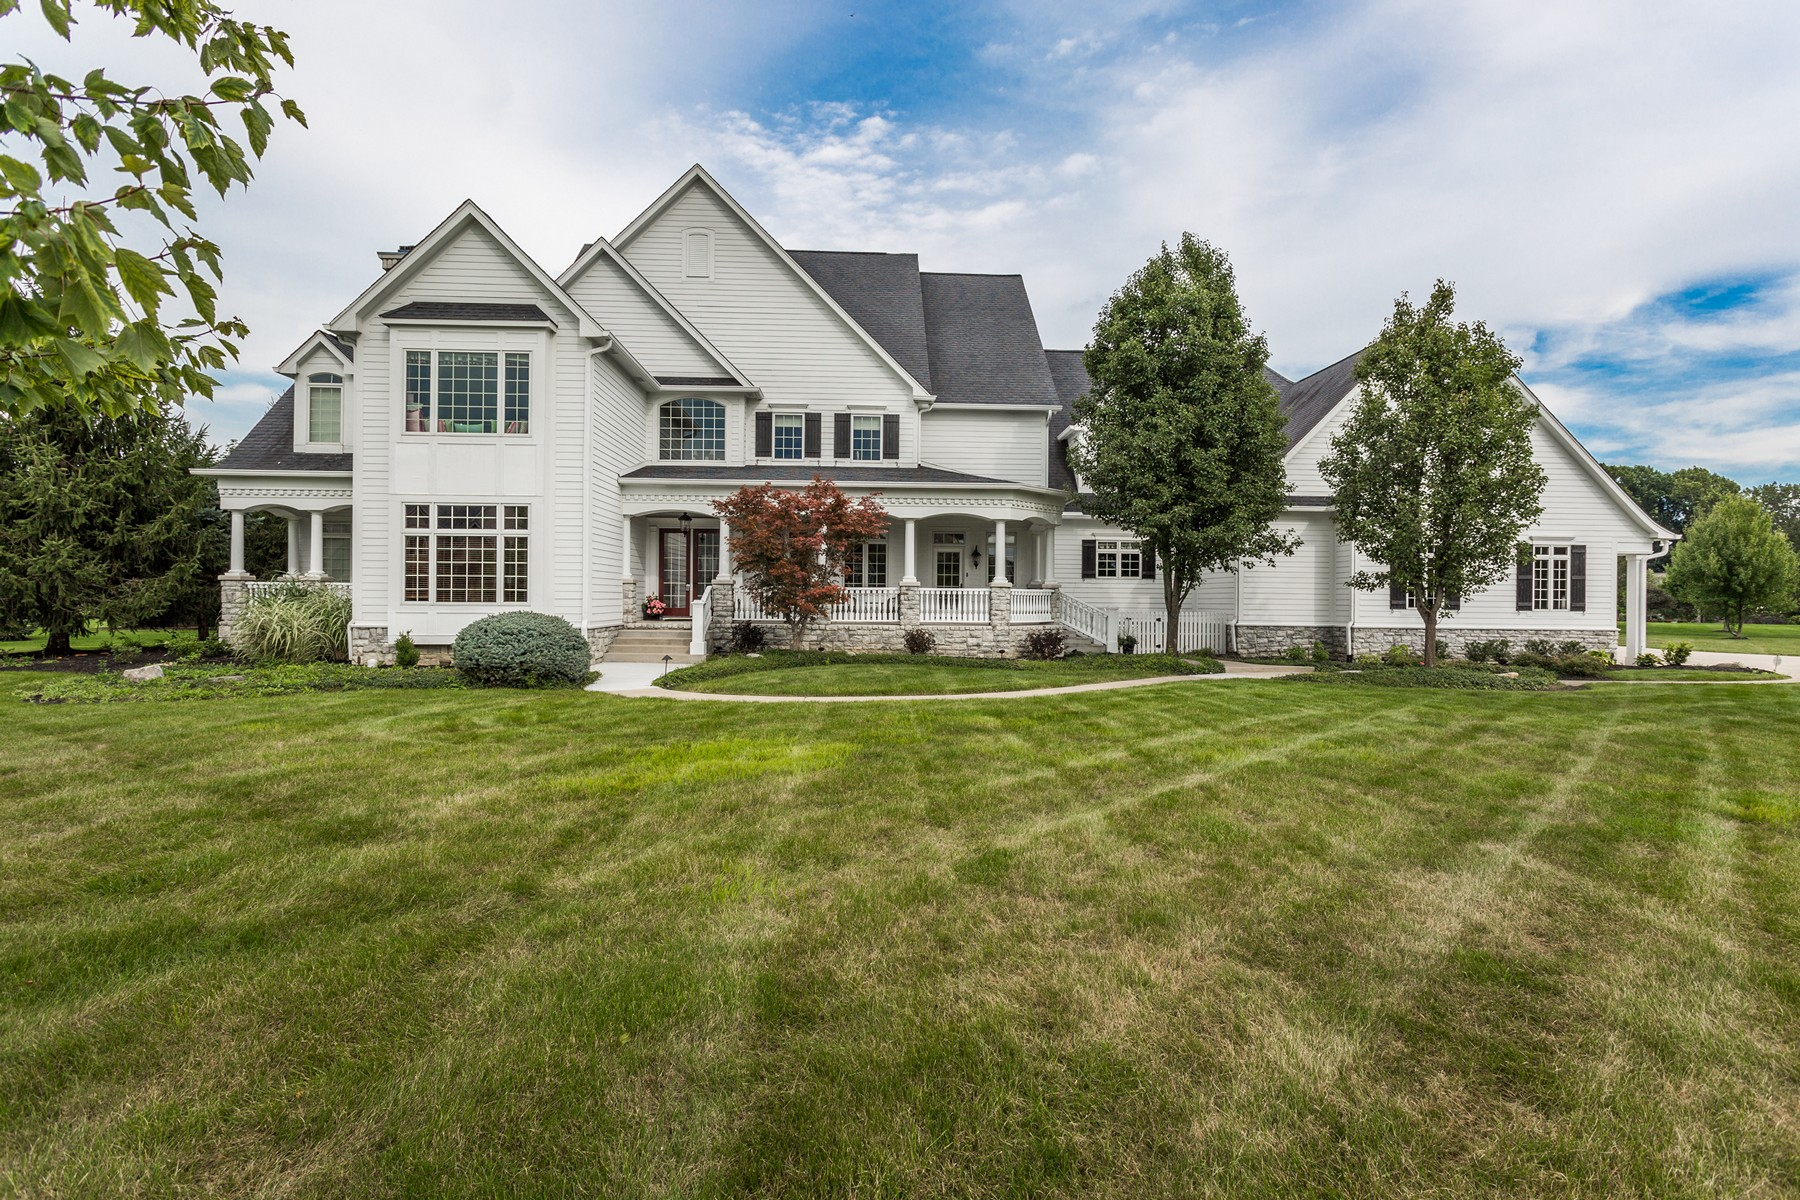 Moradia para Venda às Stunning Willow Ridge Estate 11527 Willow Ridge Dr Zionsville, Indiana, 46077 Estados Unidos